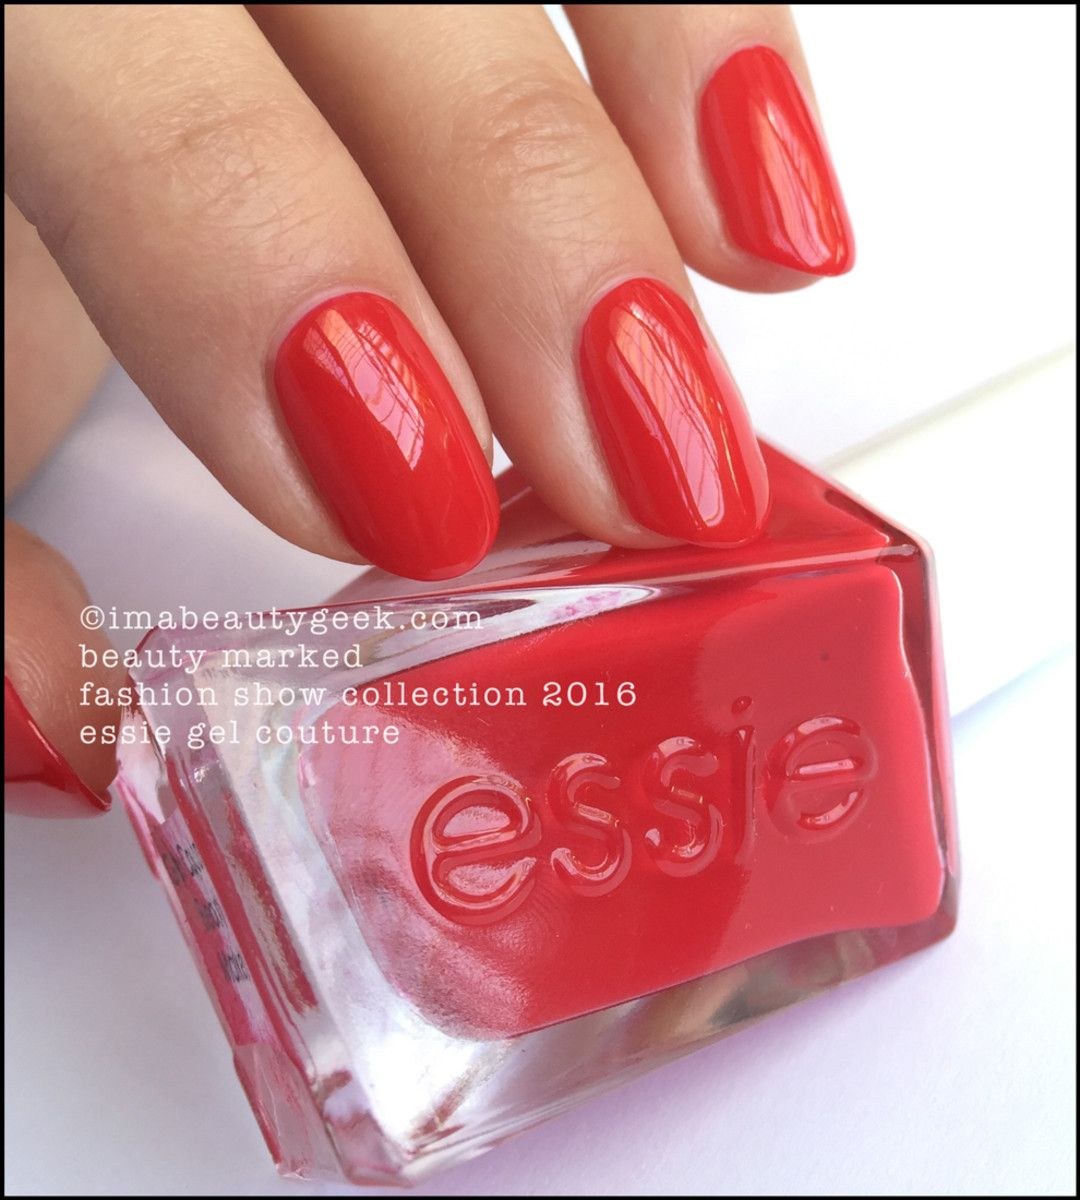 Essie gel couture Beauty Marked | Beauty | Pinterest